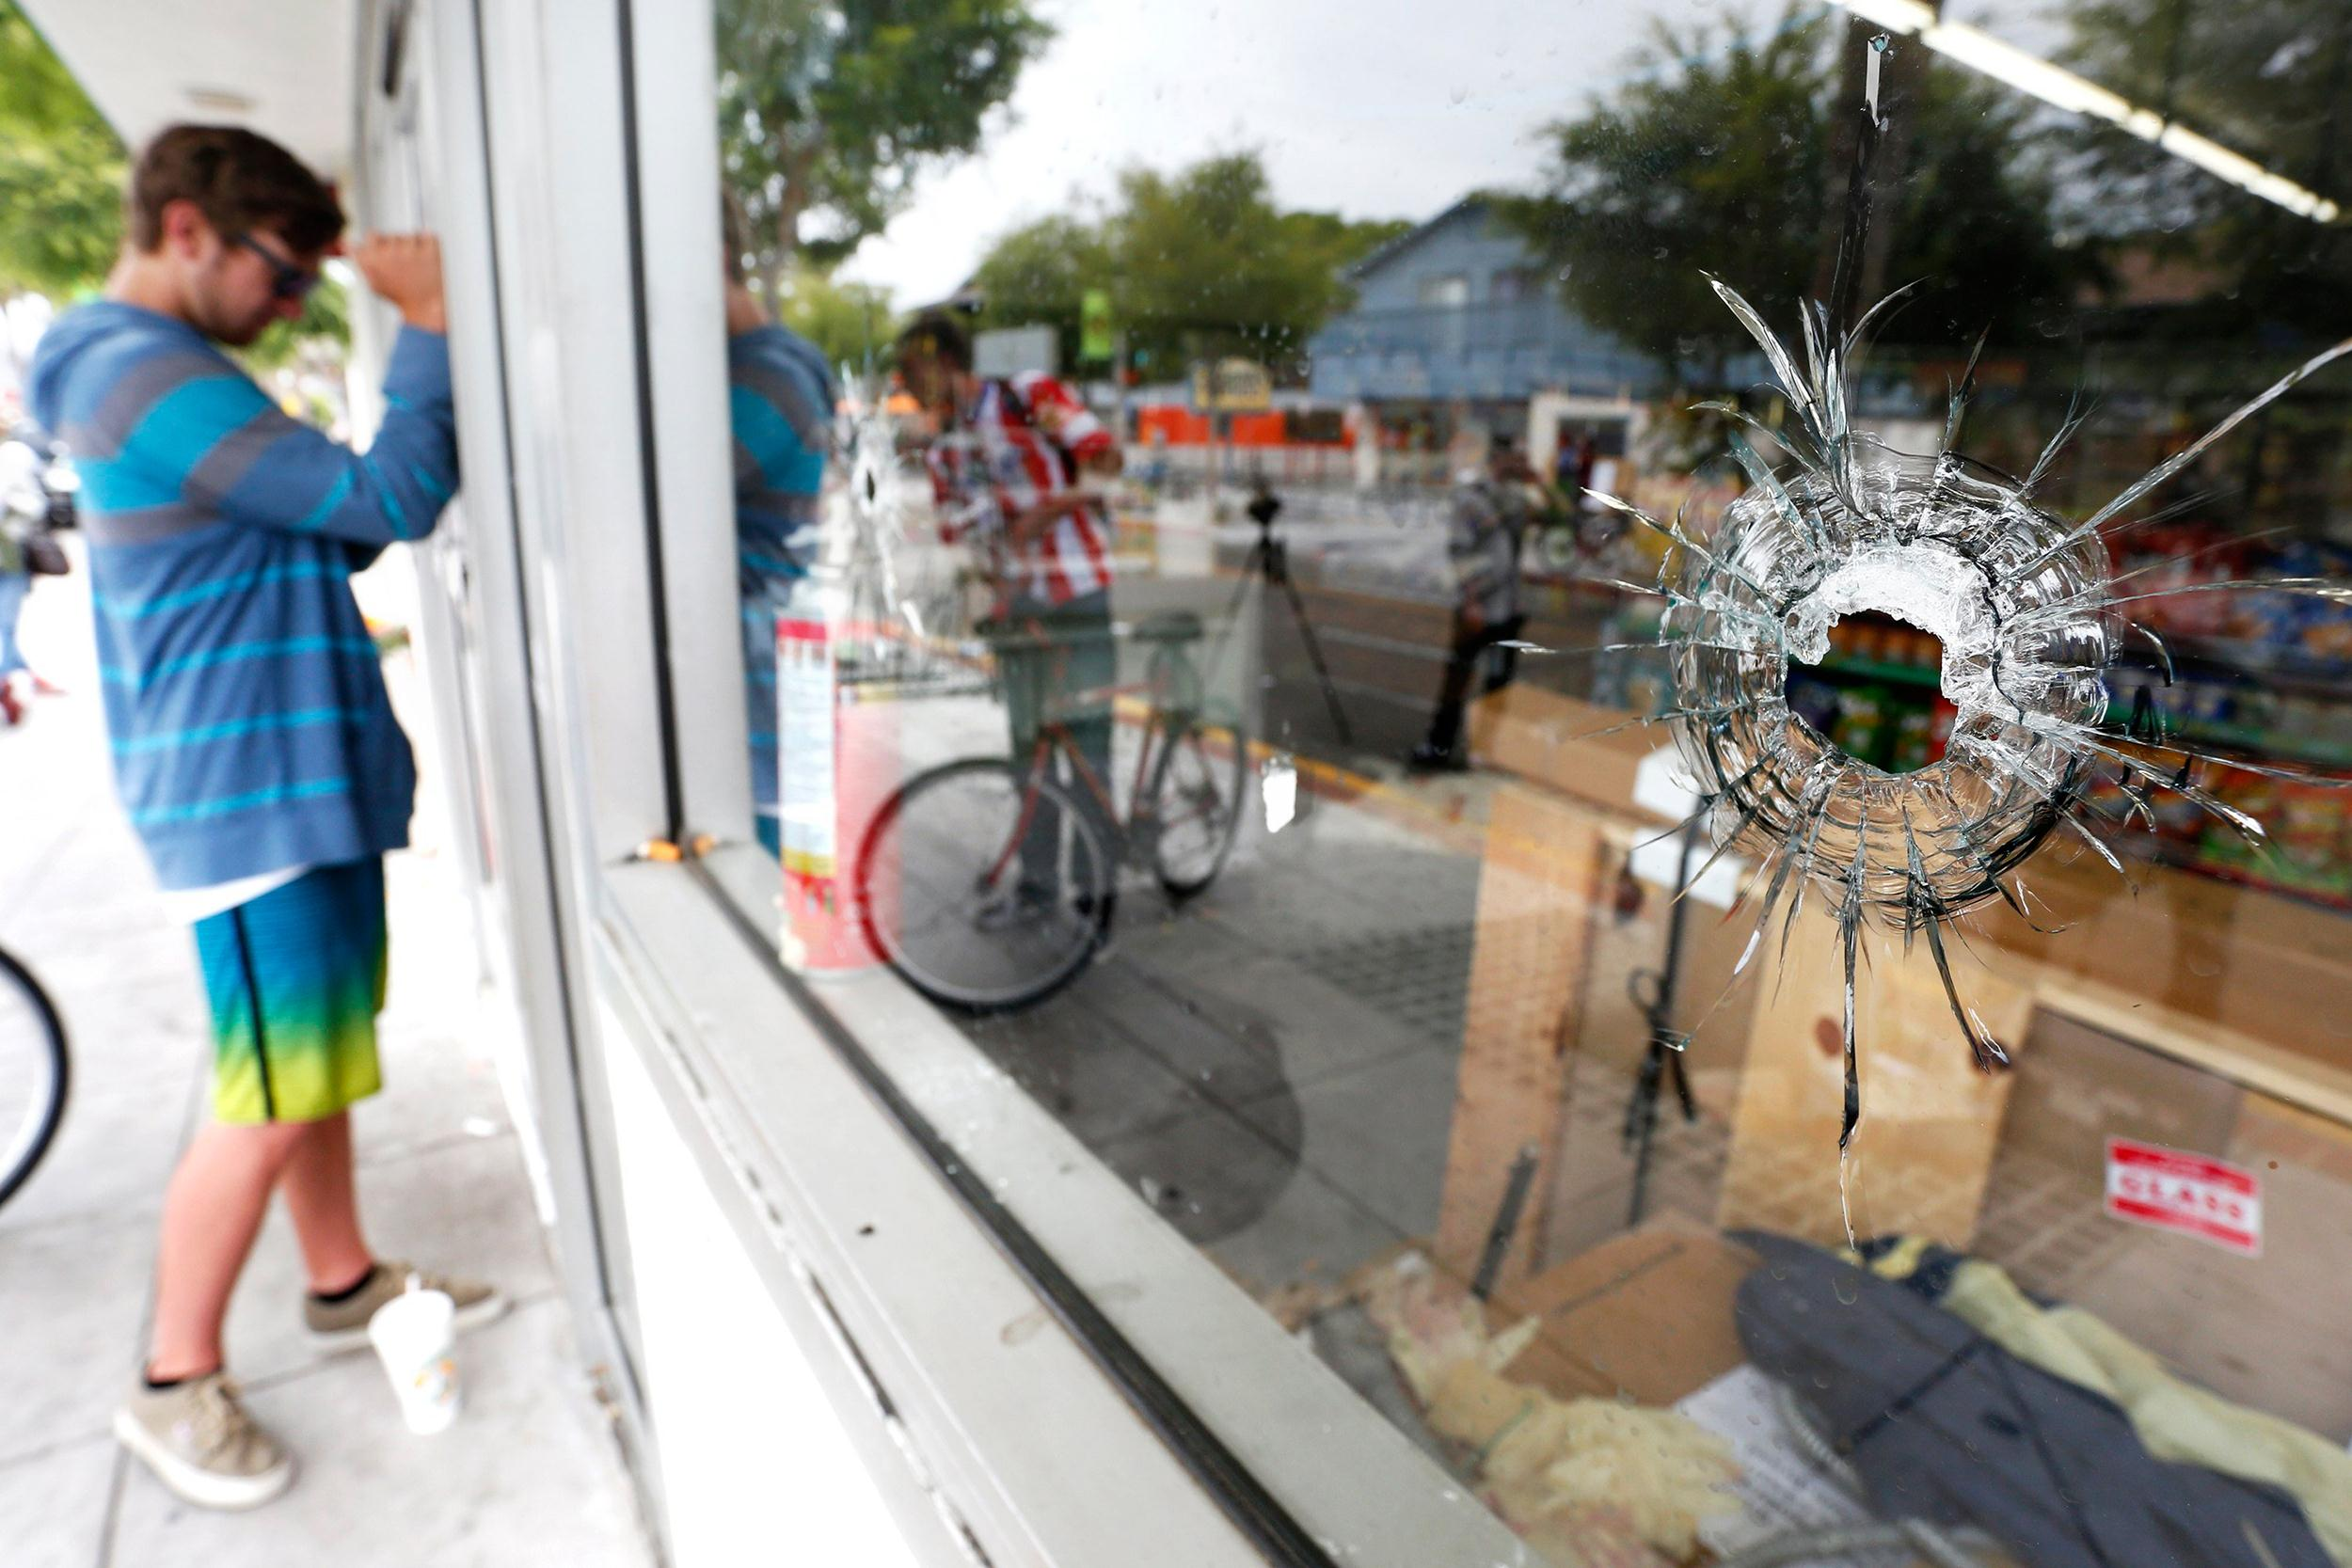 Image: A man looks through a window with bullet holes at a deli